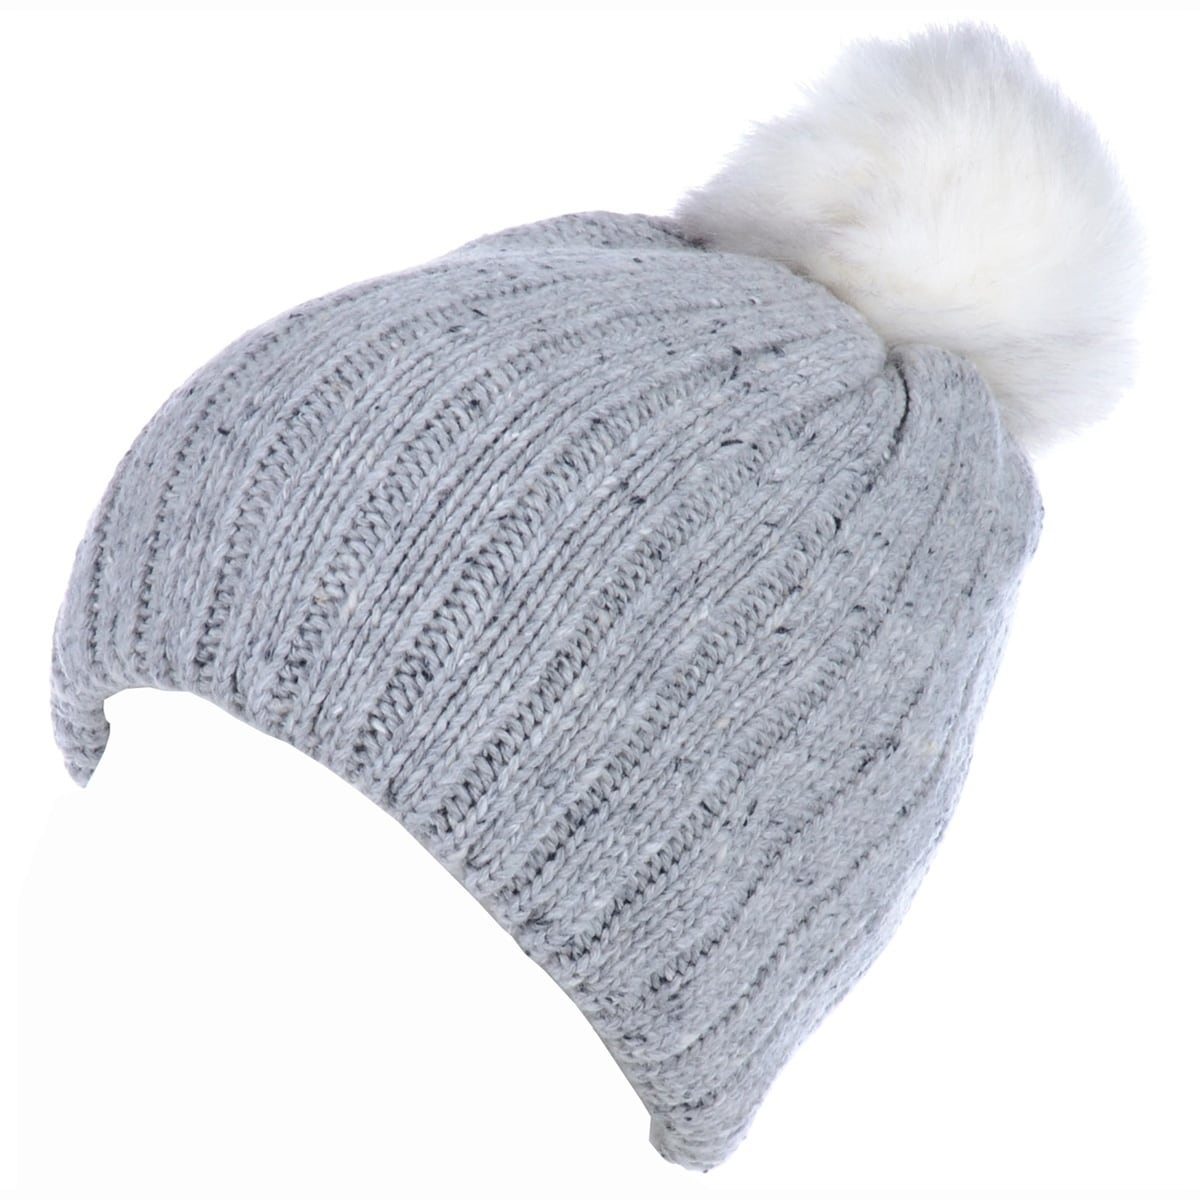 ede7d821adebea BYOS Winter Warm Fleece Lined Chunky Ribbed Knit Beanie Hat W/ White Faux  Fur Pom,Wool Blend